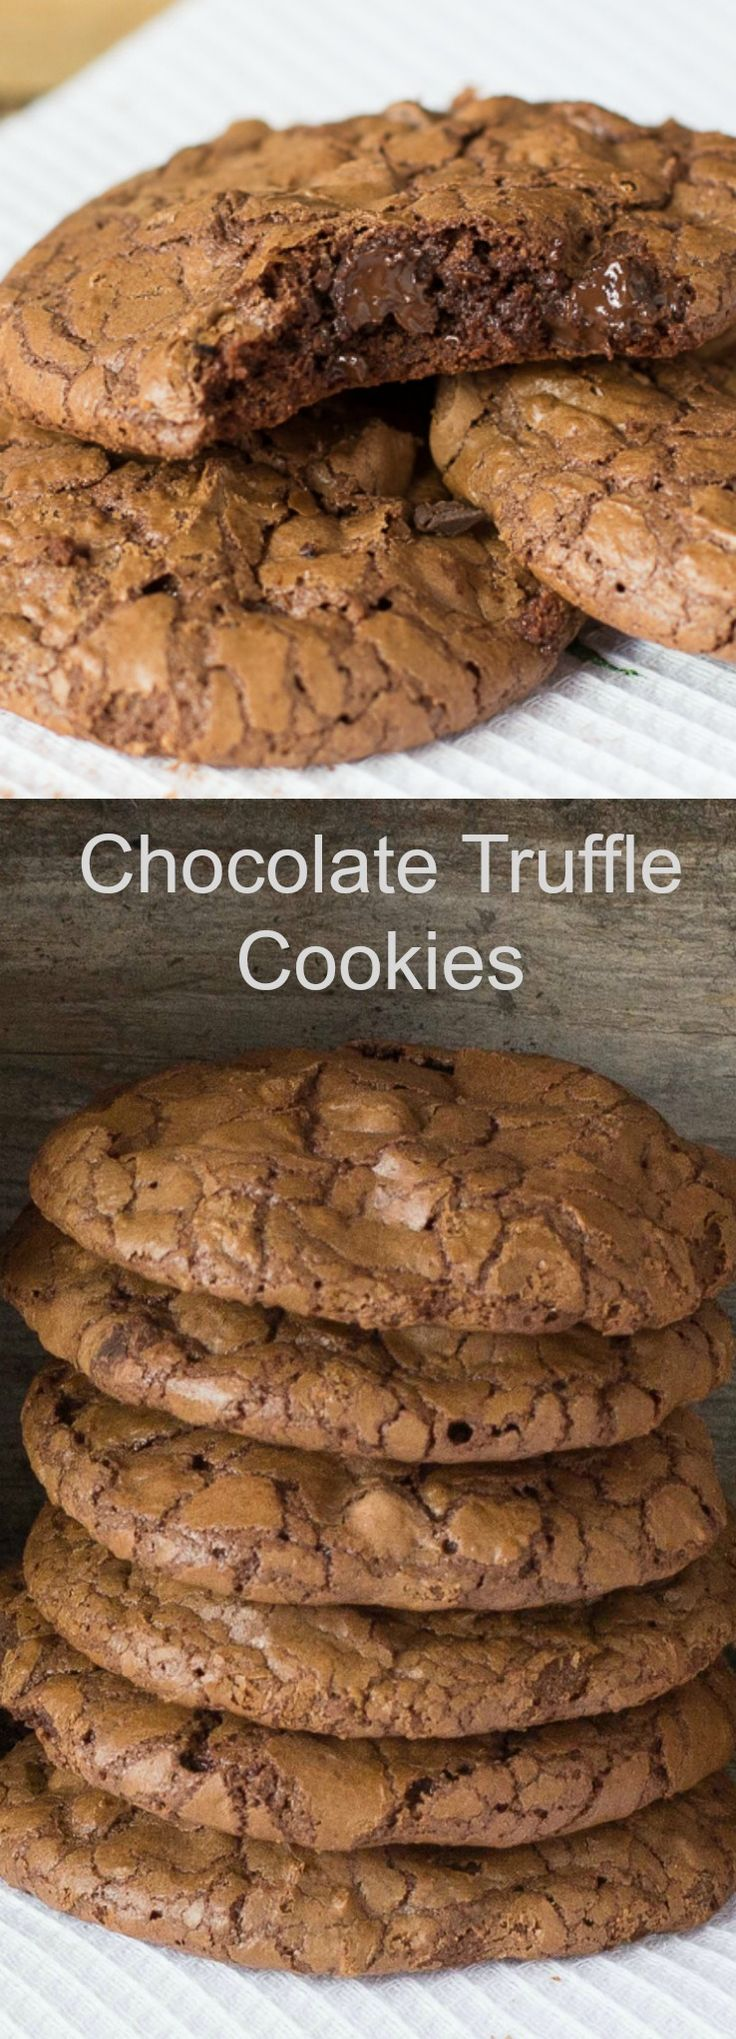 These Chocolate Truffle Cookies are the ultimate chocolate lover's cookie. These cookies are nice and crisp on the outside yet soft and chewy on the inside.